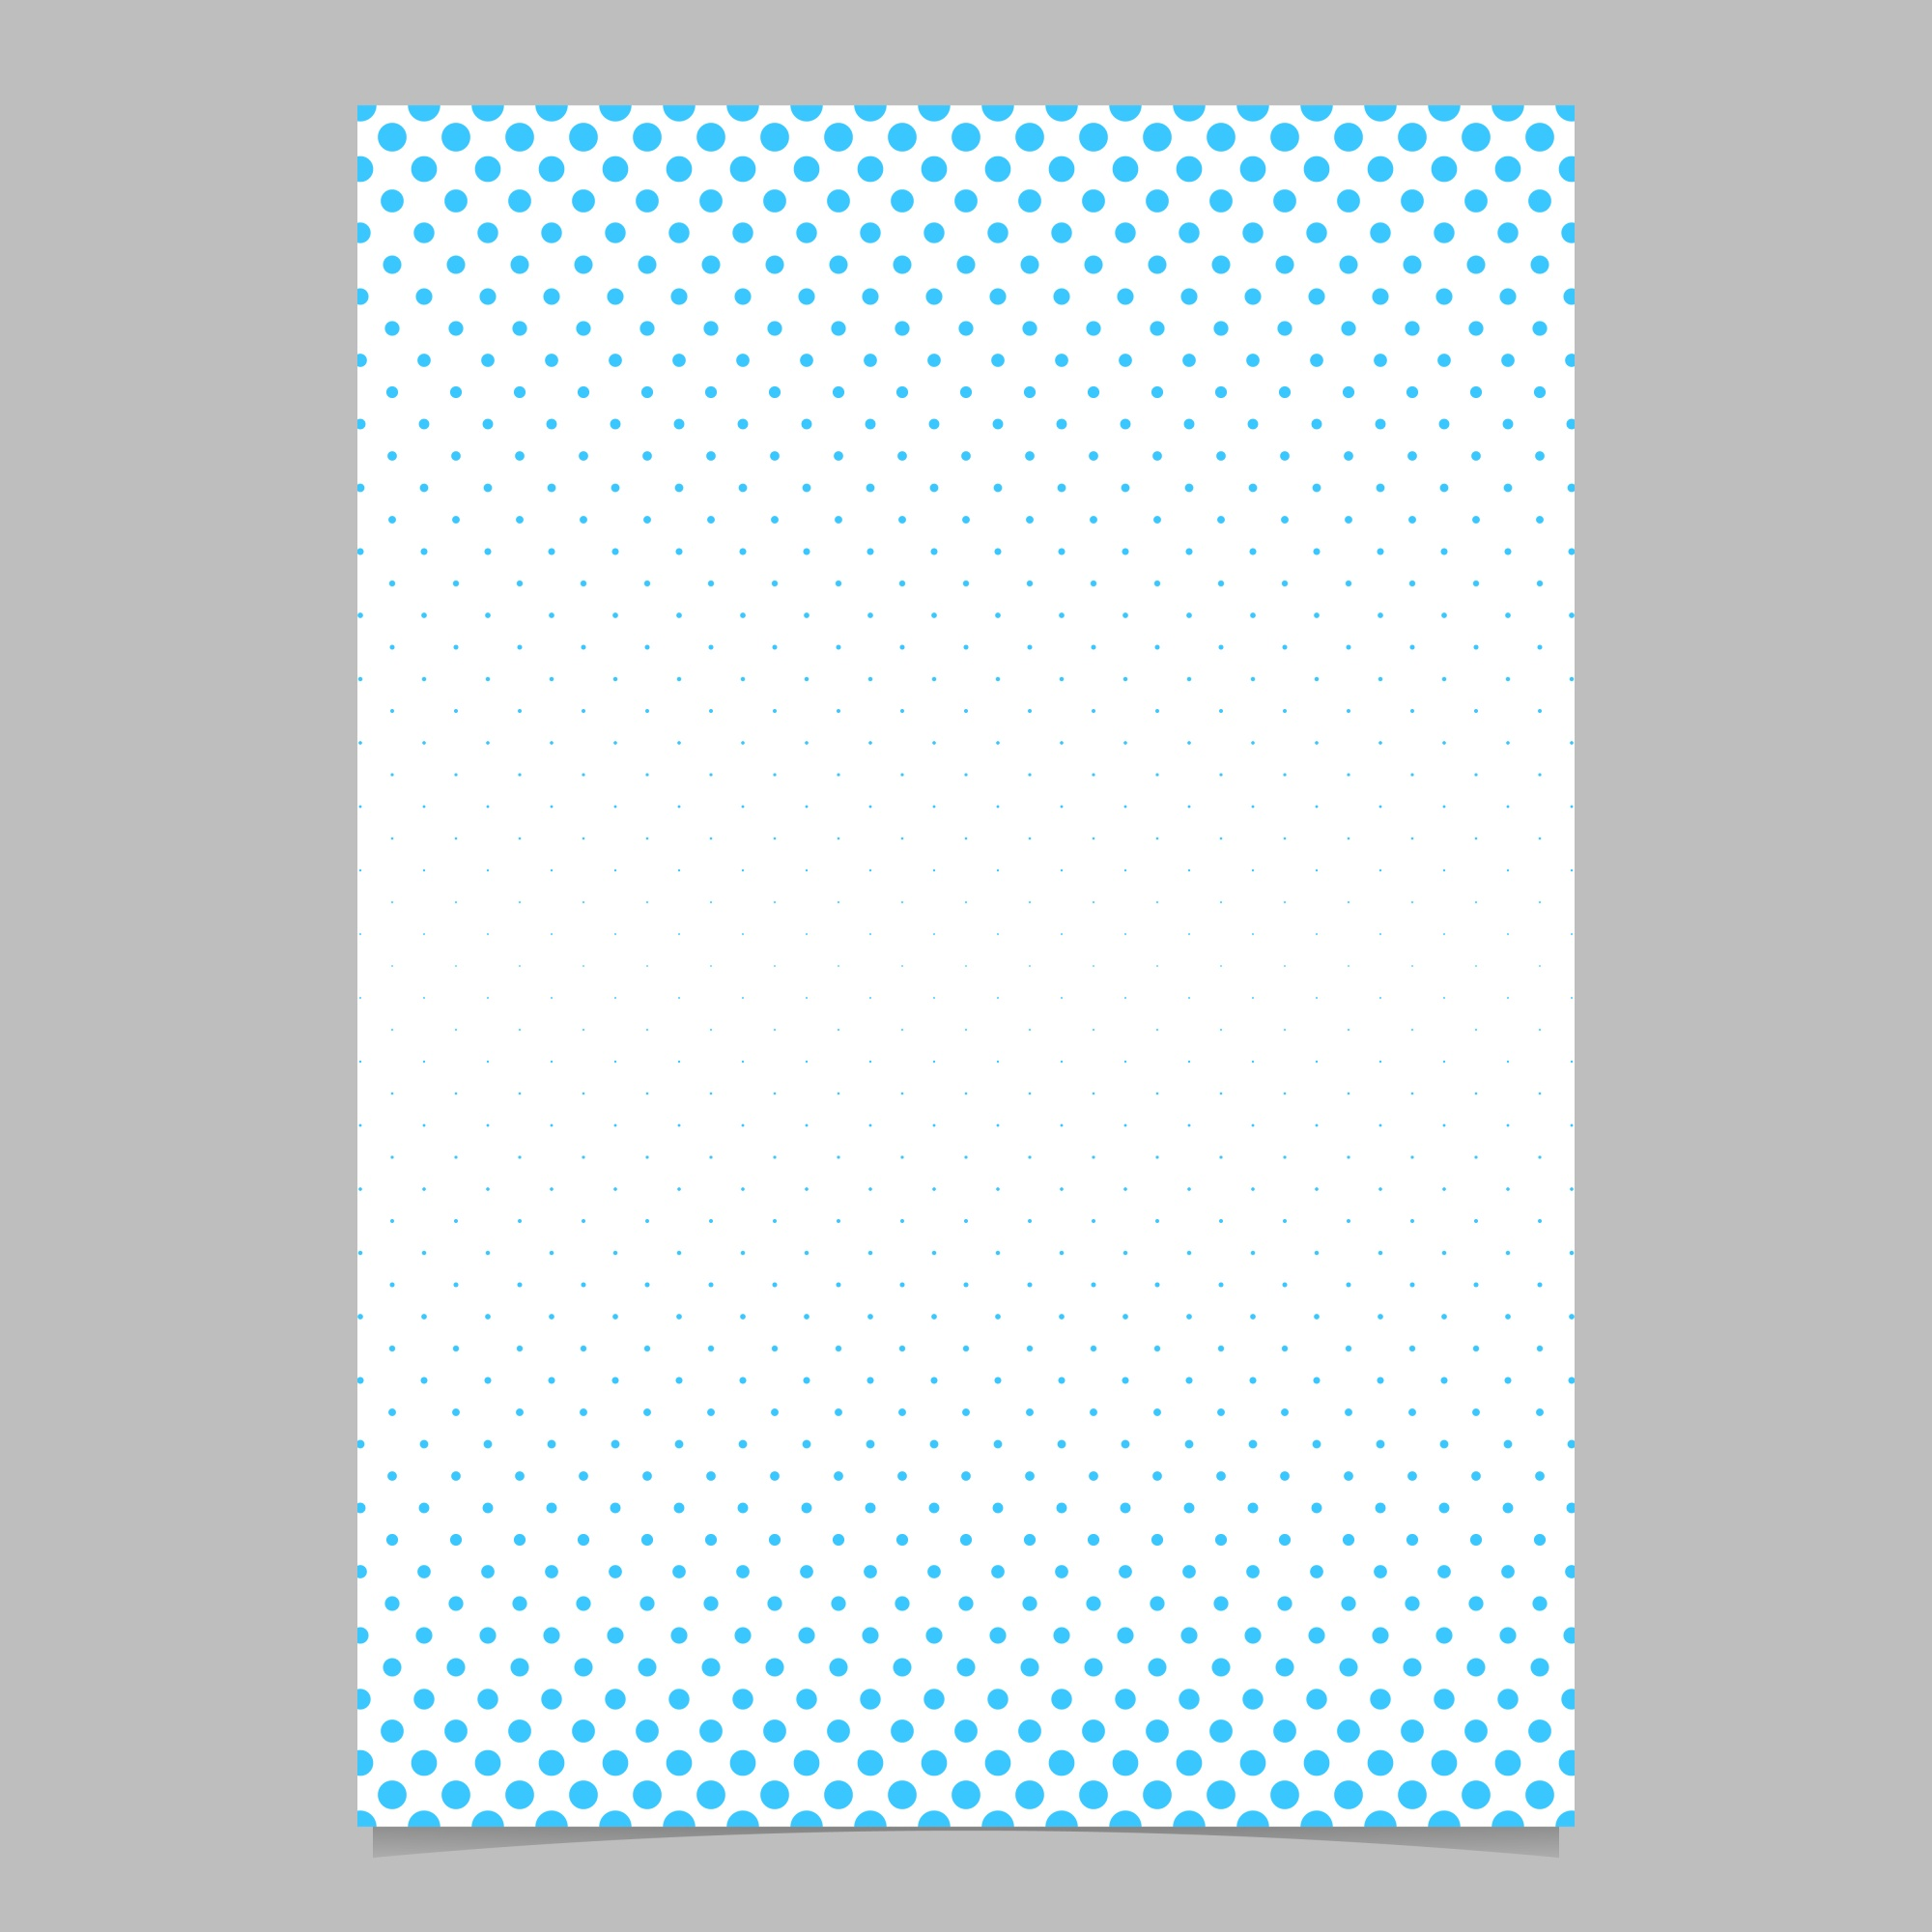 Retro halftone dot pattern brochure template - vector poster background illustration with circle pattern